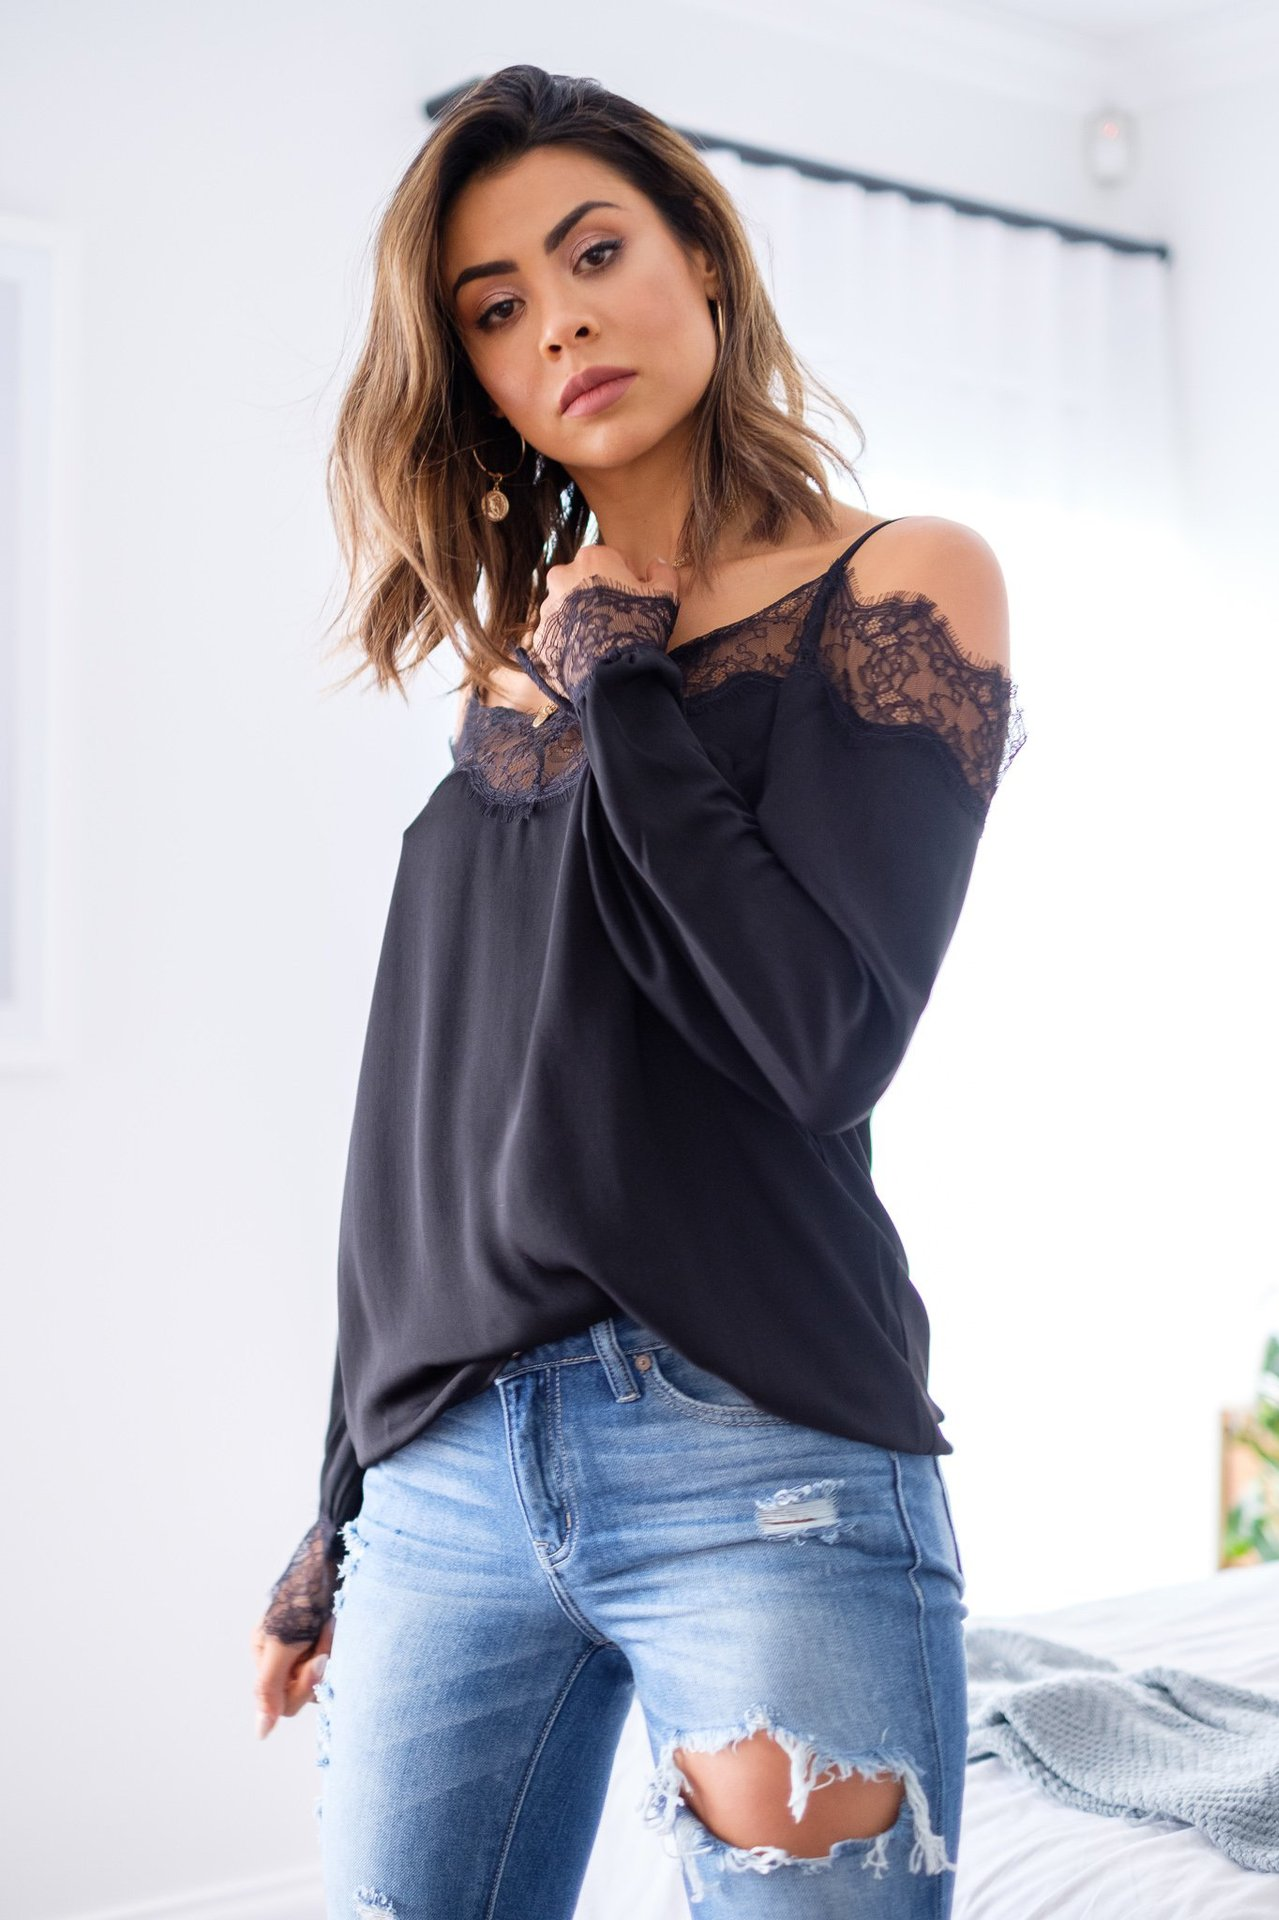 HTB1qnPGaRv0gK0jSZKbq6zK2FXan - Sexy Off Shoulder Lace Patchwork Strapless Long Sleeve Women Blouse Fall Tops Women Tops and Blouse Sexy Tops